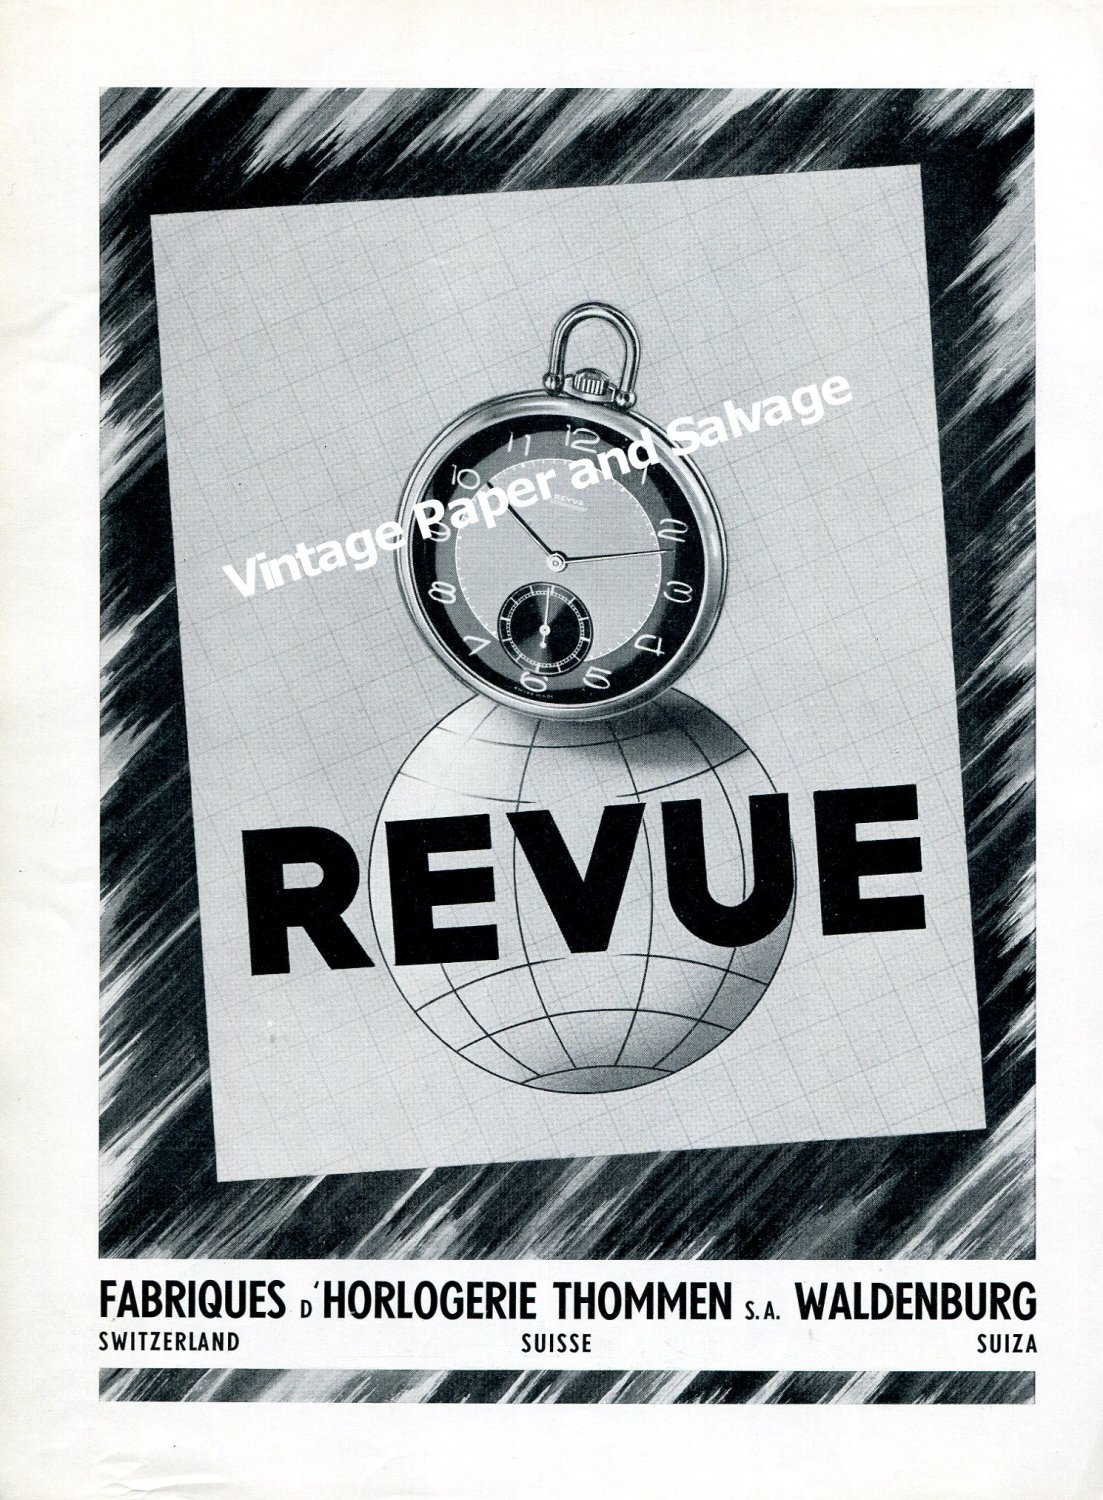 Vintage 1942 Revue Watch Company Thommen SA Switzerland 1940s Swiss Ad Advert Suisse